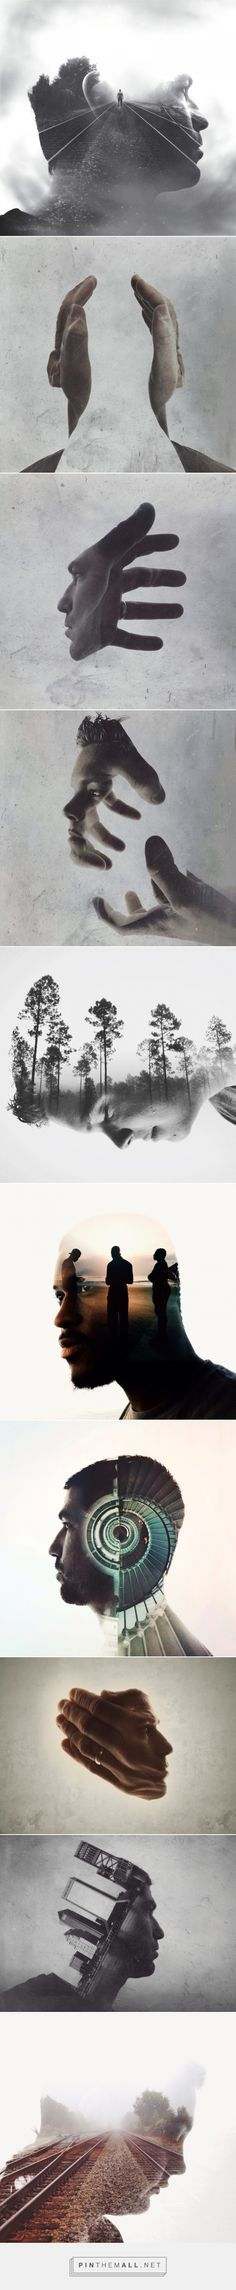 Double Exposure Portraits by Brandon Kidwell Photomontage, Creative Photography, Portrait Photography, Photography Ideas, Nature Photography, Photoshop Photography, Double Exposition, Double Exposure Photography, Multiple Exposure